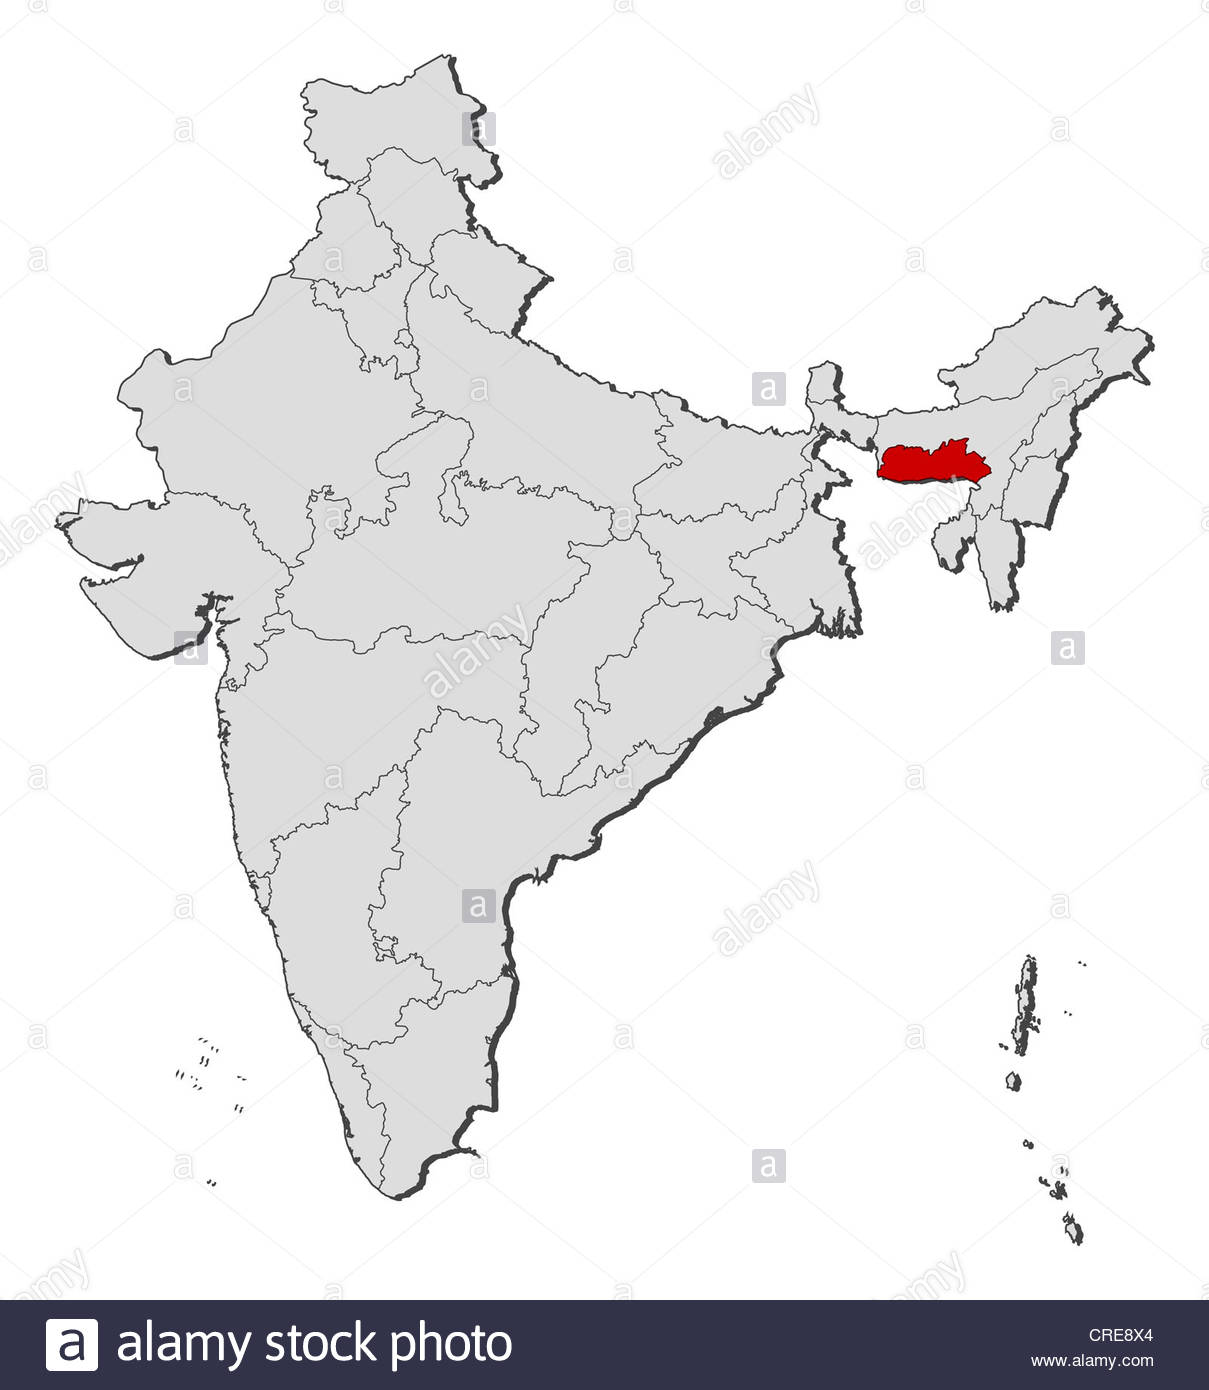 Meghalaya In India Map From Alamy 4